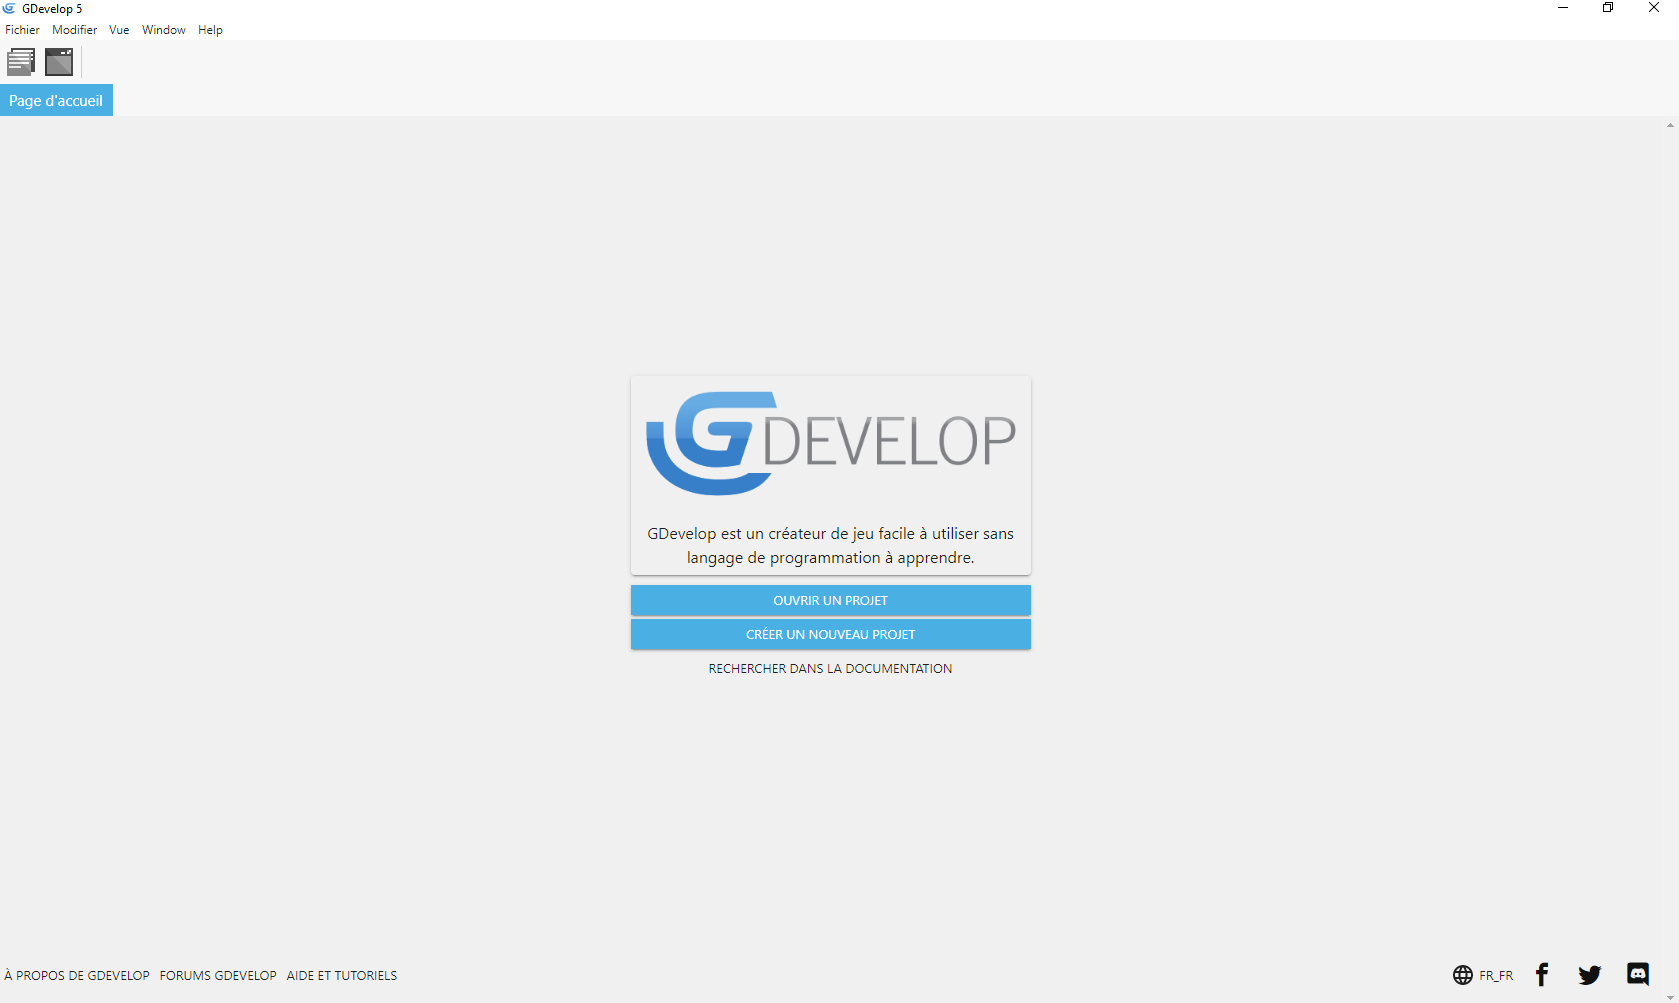 https://makeyourgame.fun//upload/users/Lyxyz/tuto_install_gdevelop/gdevelop_ecran_titre-5e9db27b320d3.png